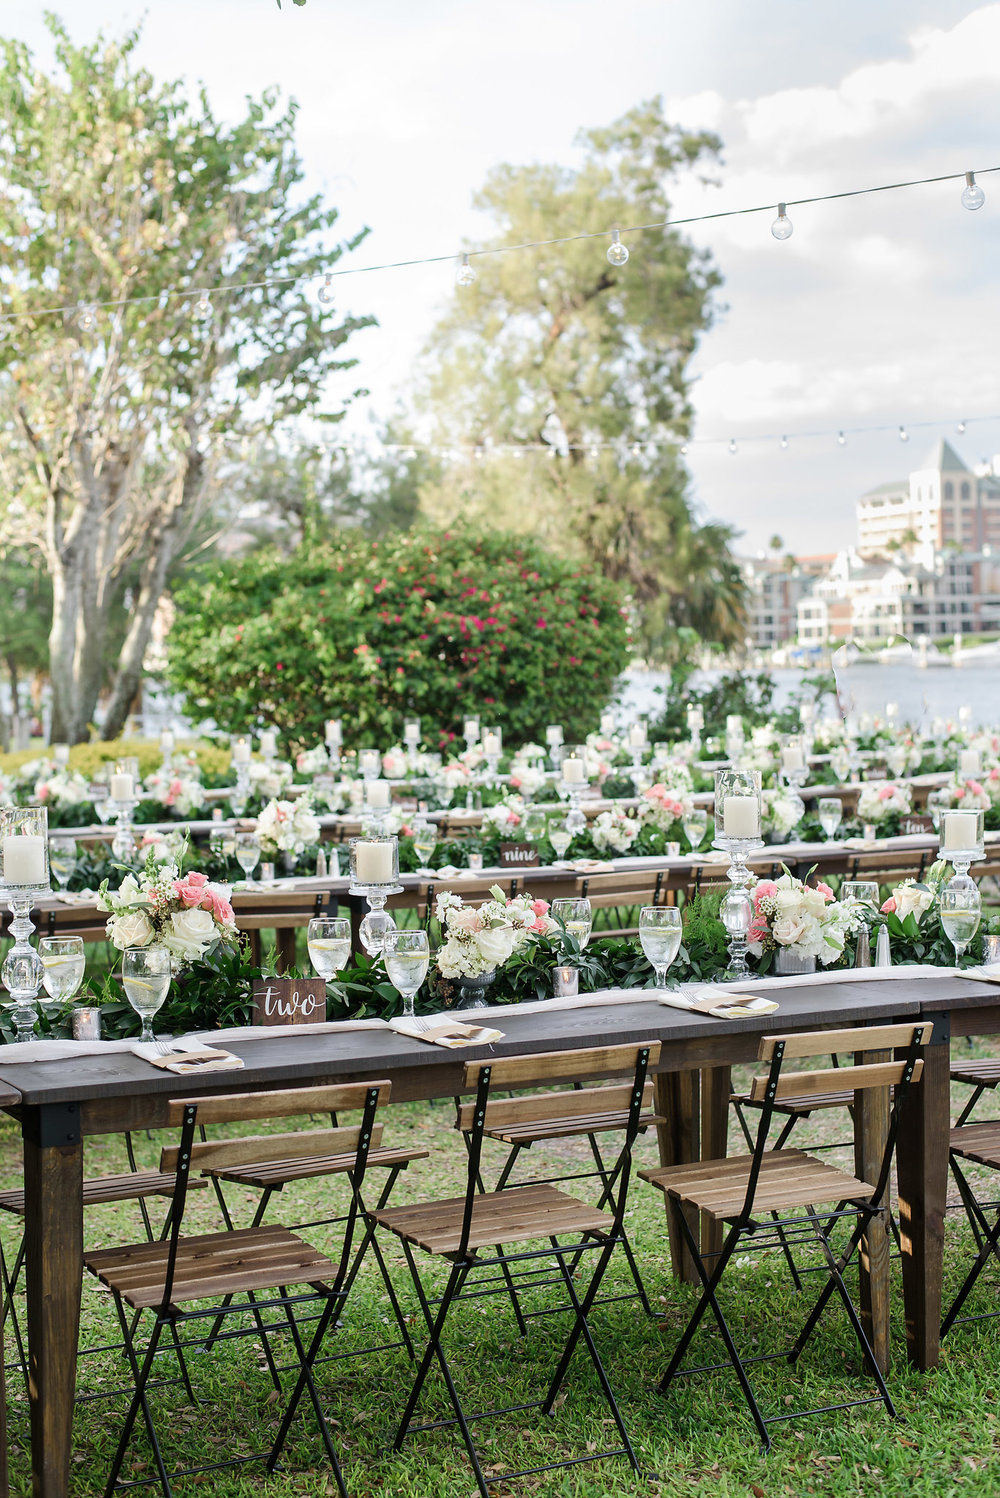 tampa farm table rentals - Davis Island Garden Club